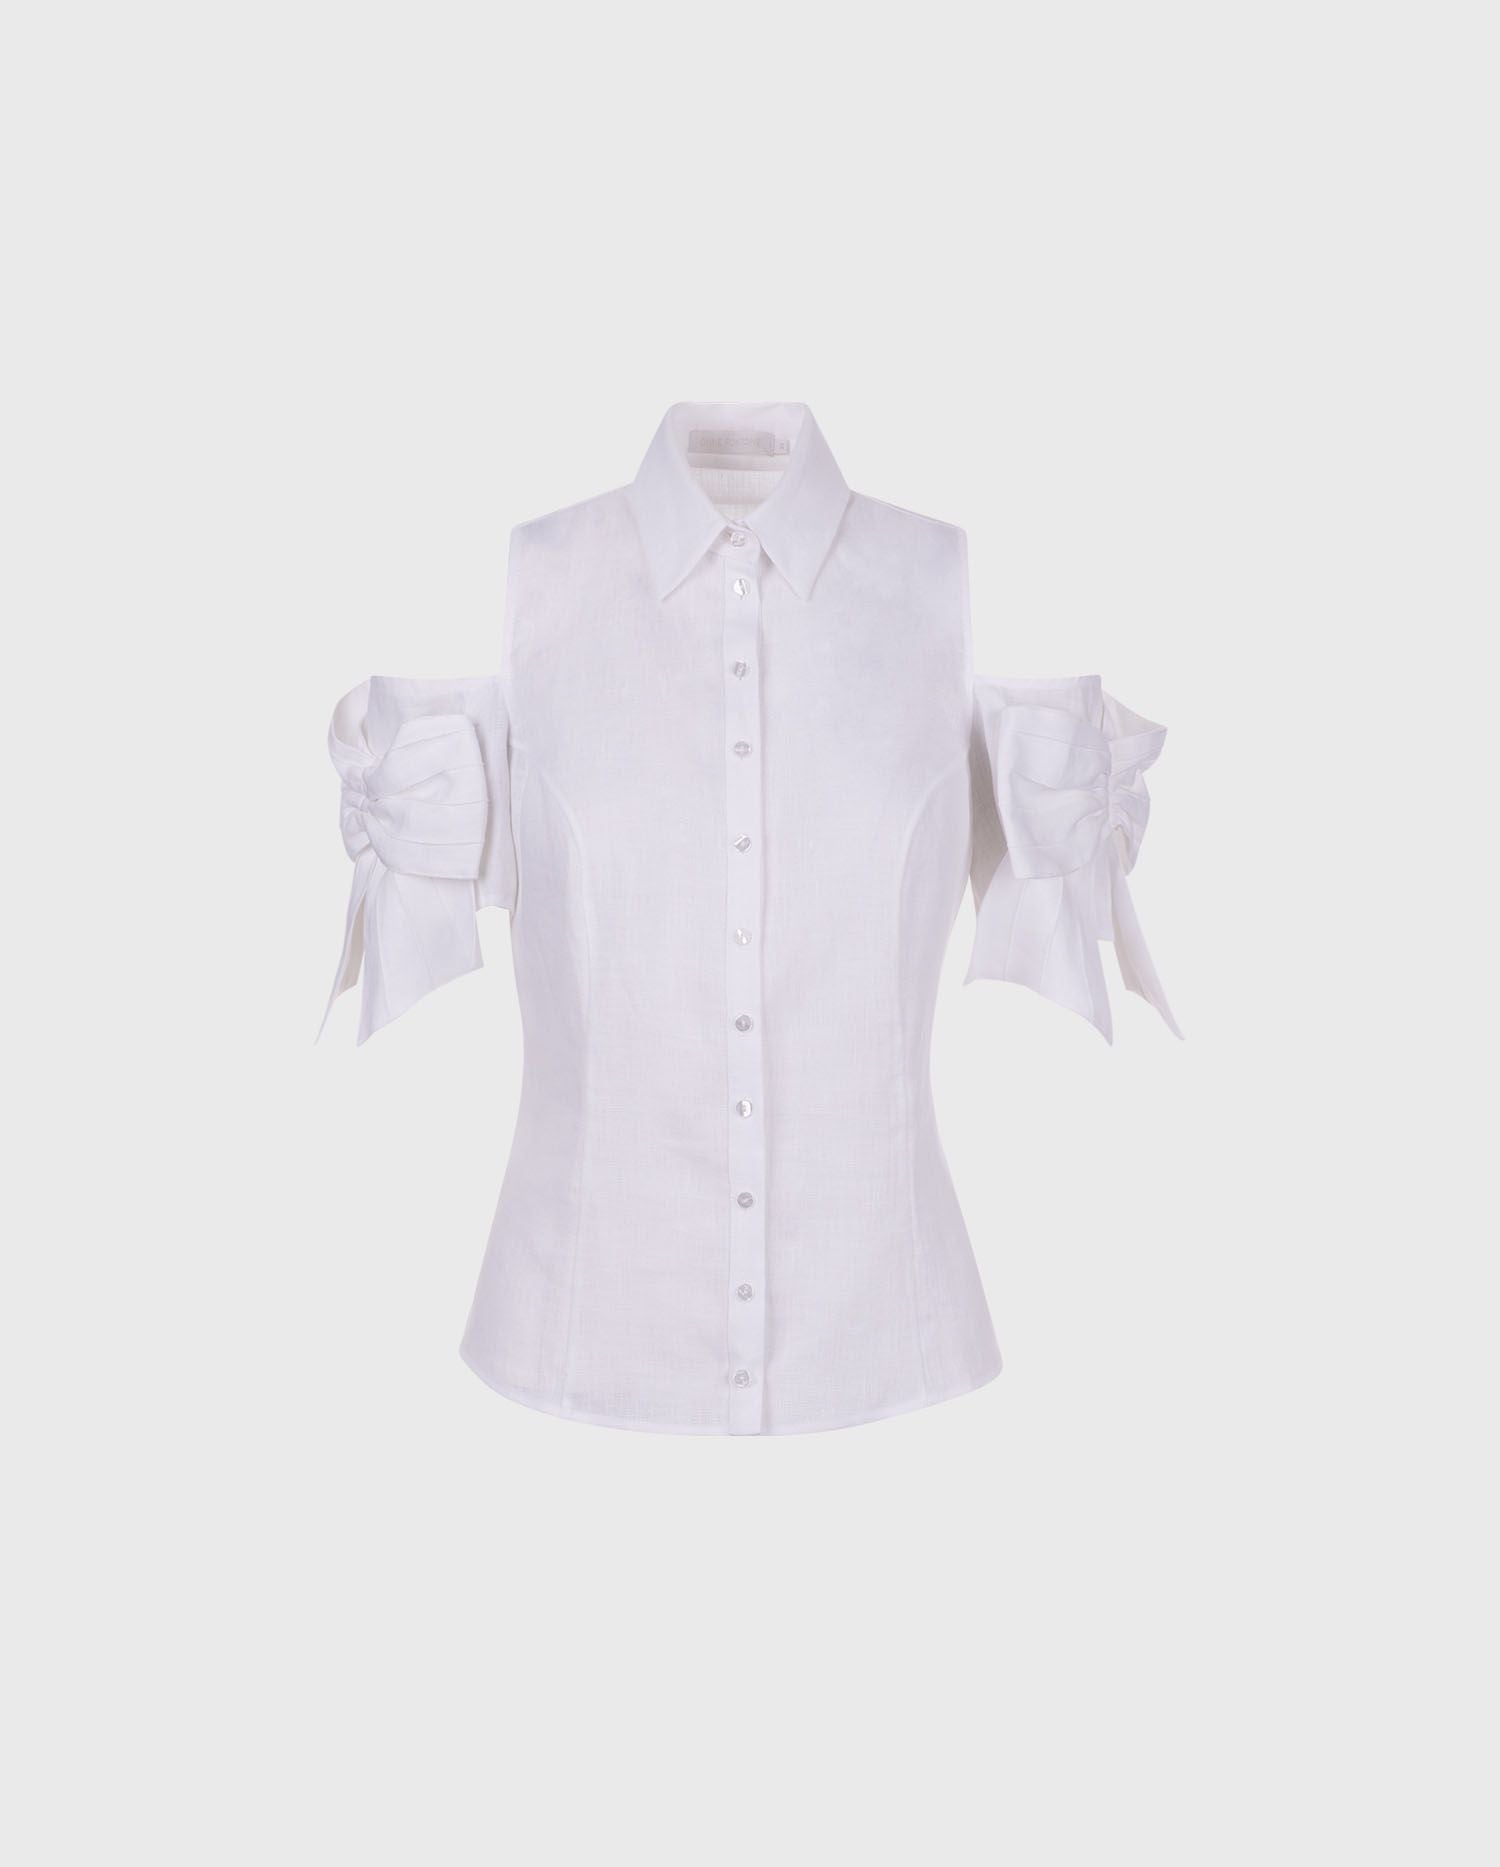 Anne Fontaine CALLA Shirt: White linen shirt with placed bows